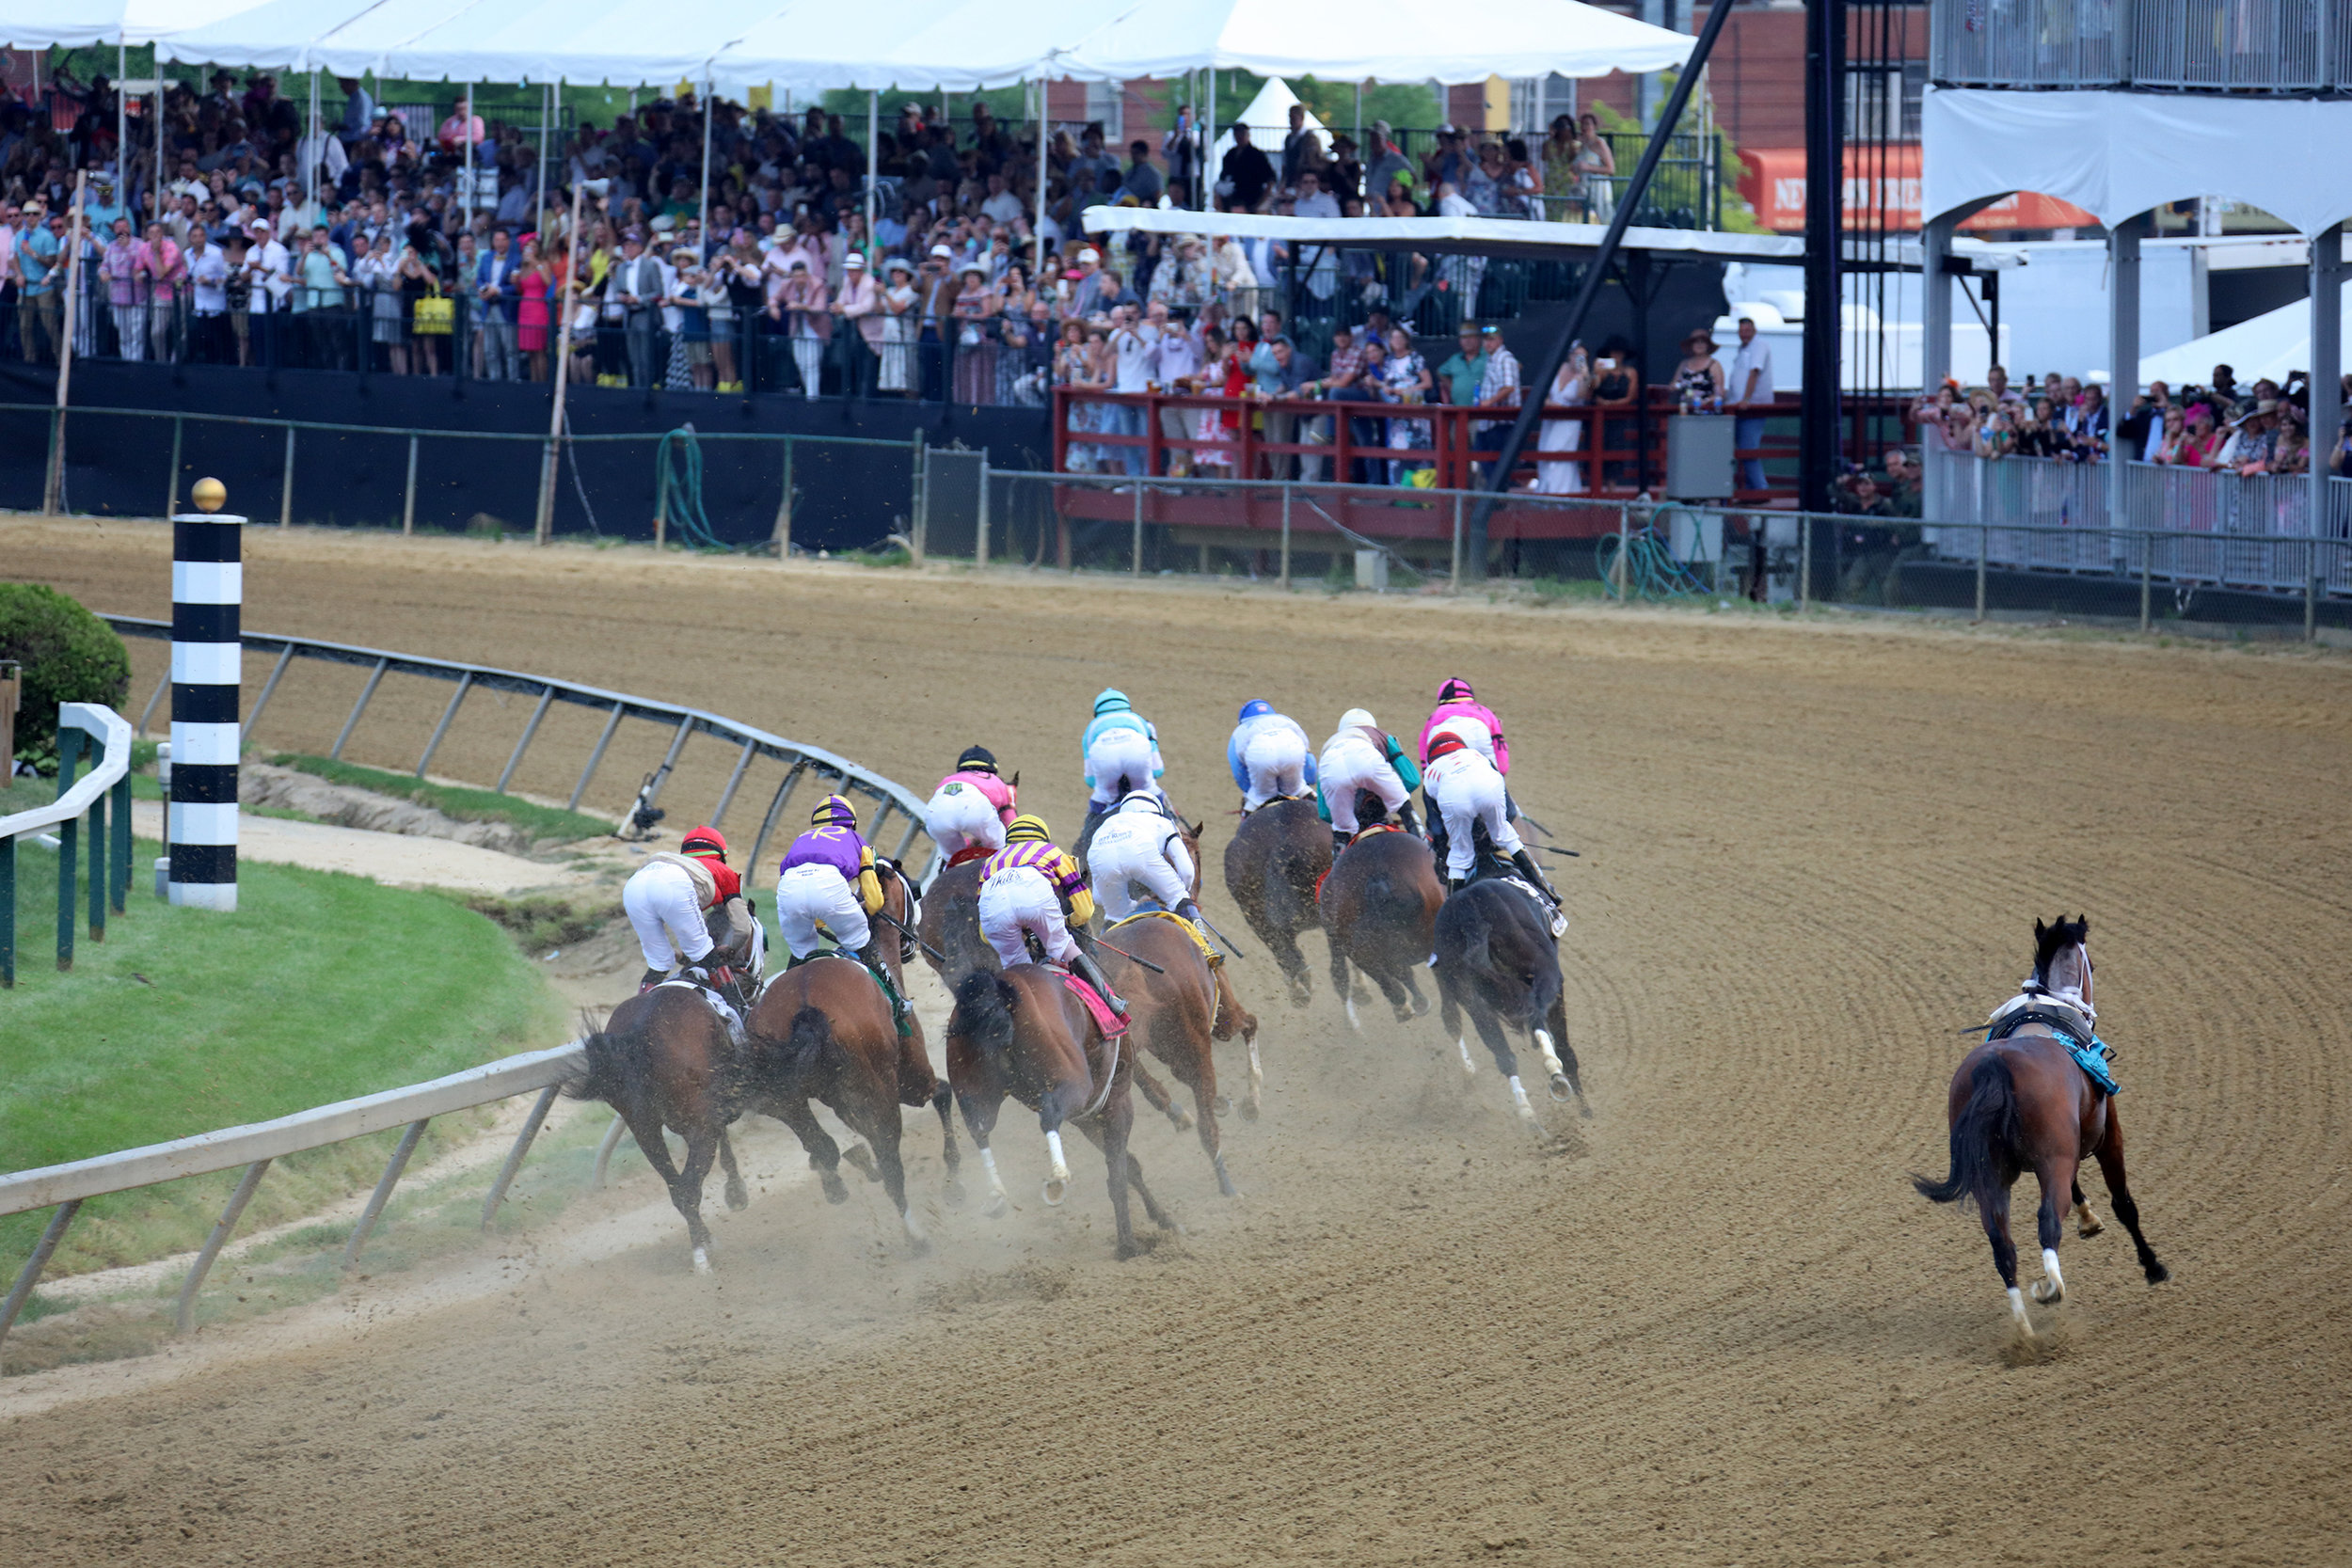 Rounding the first turn, Bodexpress (far right) goes it alone. There's something poignant and noble about that. Courtesy MarylandGovPics.